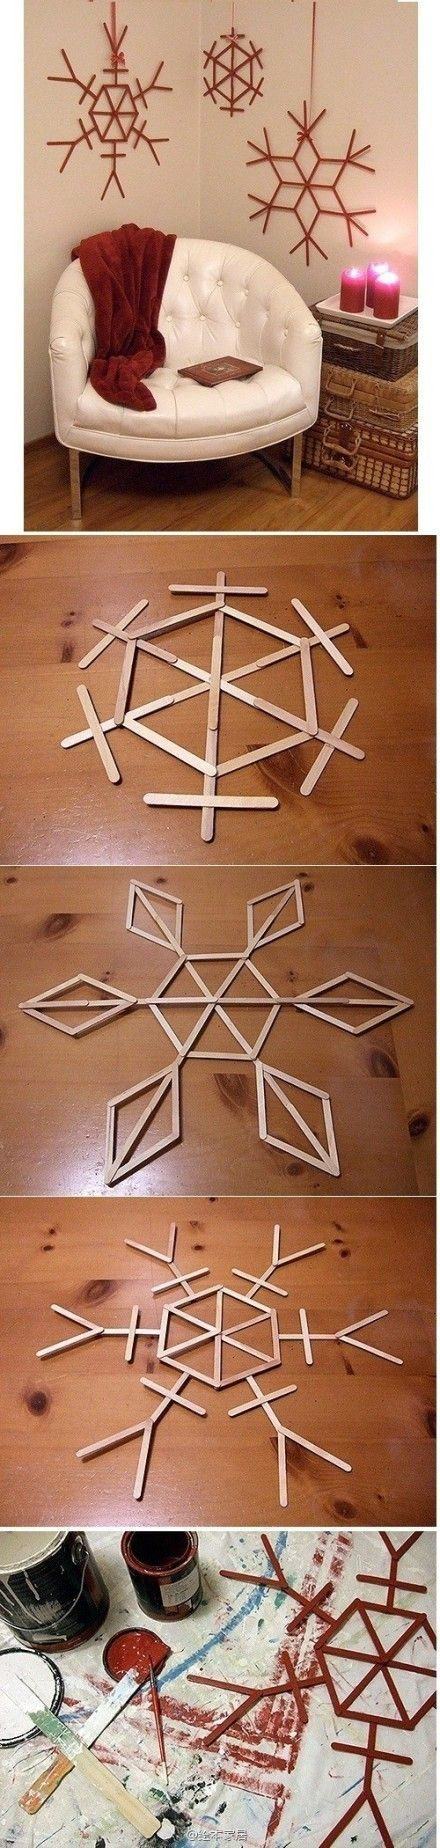 snowflakes for the wall